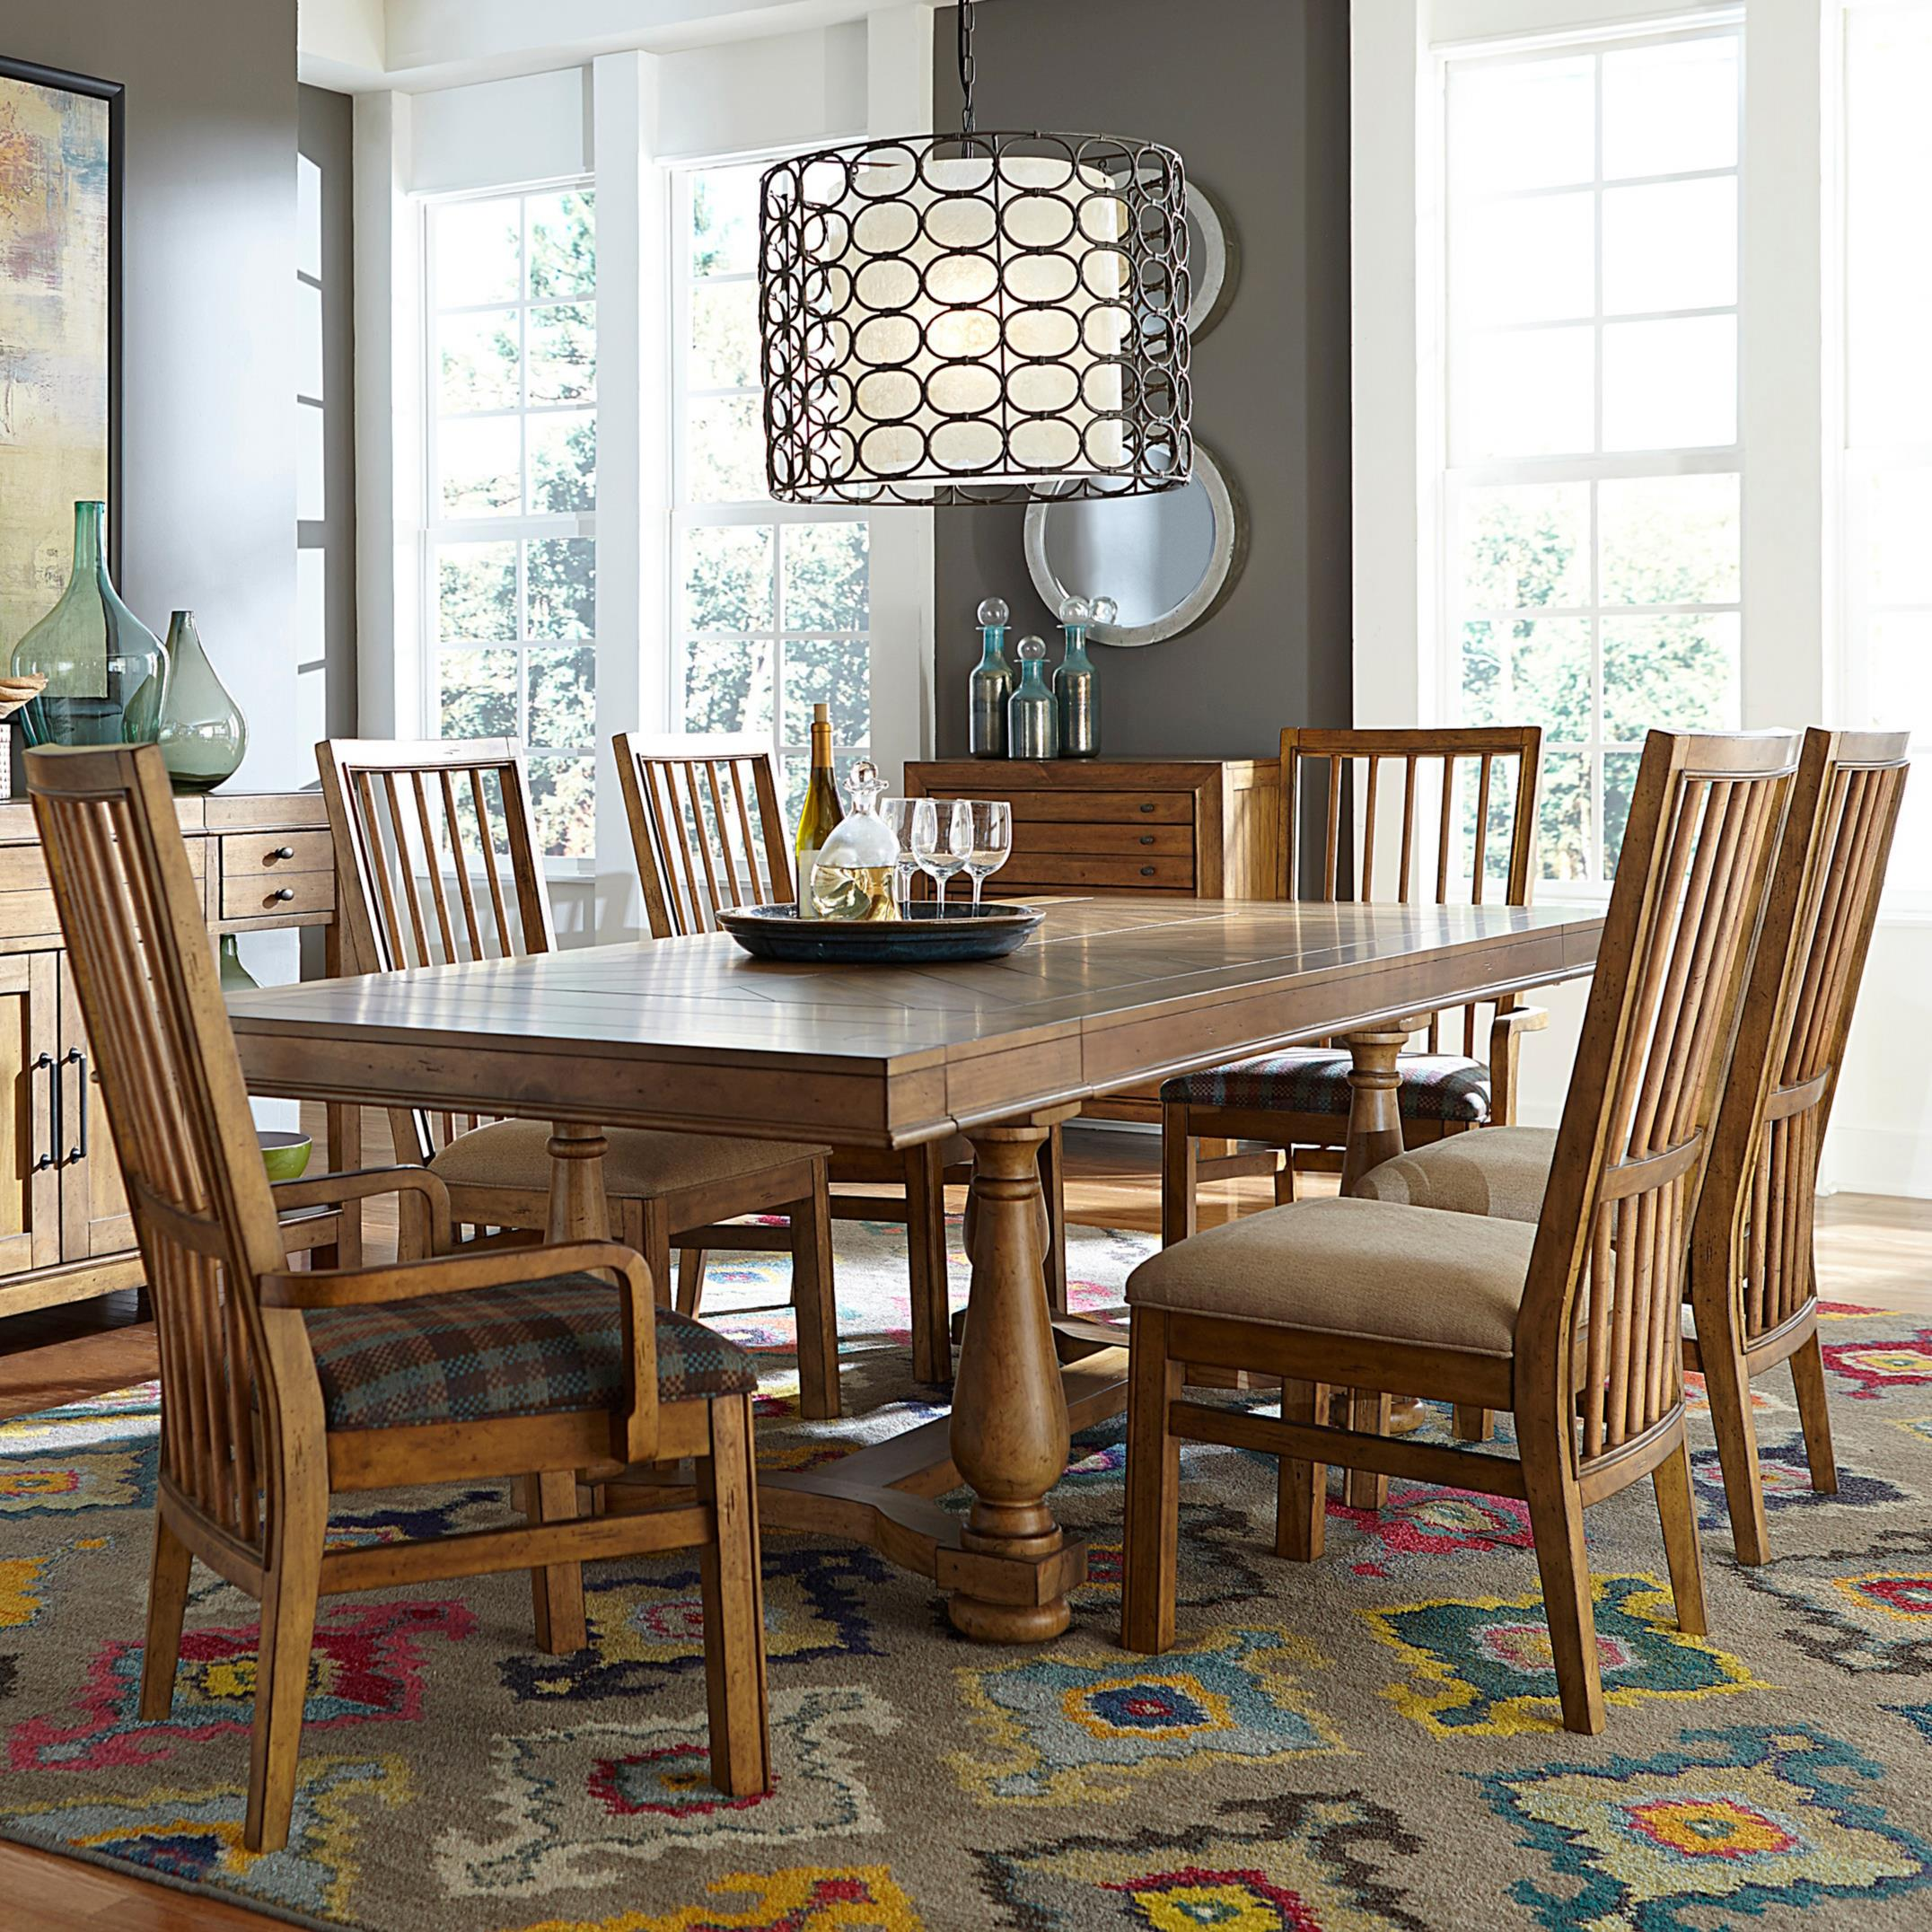 Broyhill Furniture Bethany Square 7 Piece Dining Set - Item Number: 4930-531+51+2x80+4x81